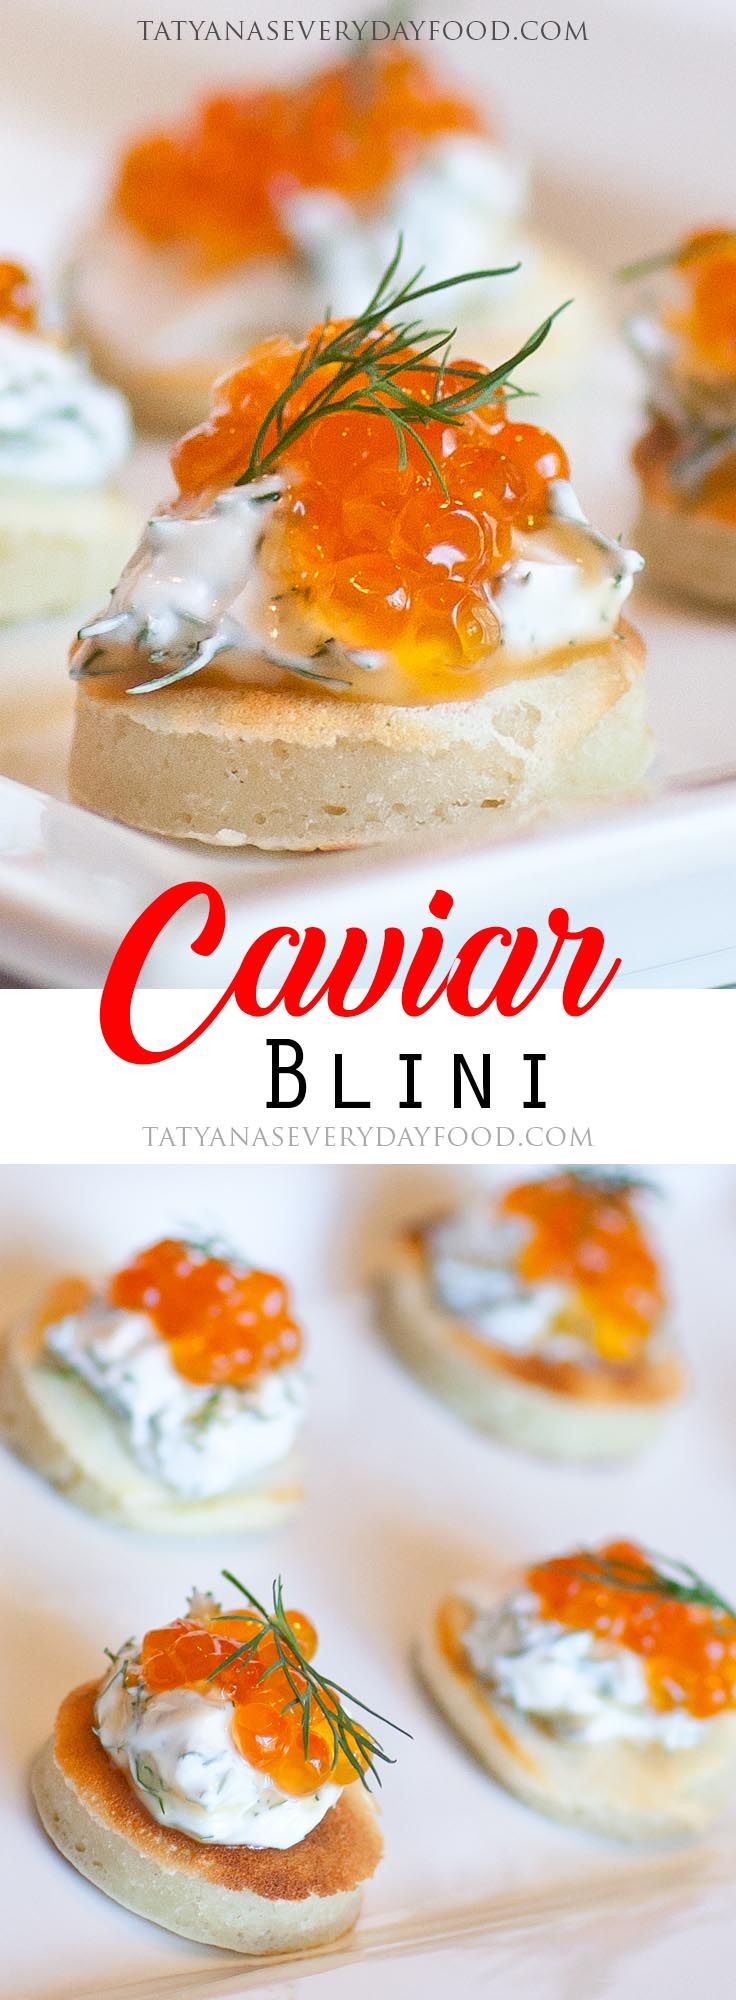 Russian Caviar Blini - Tatyanas Everyday Food